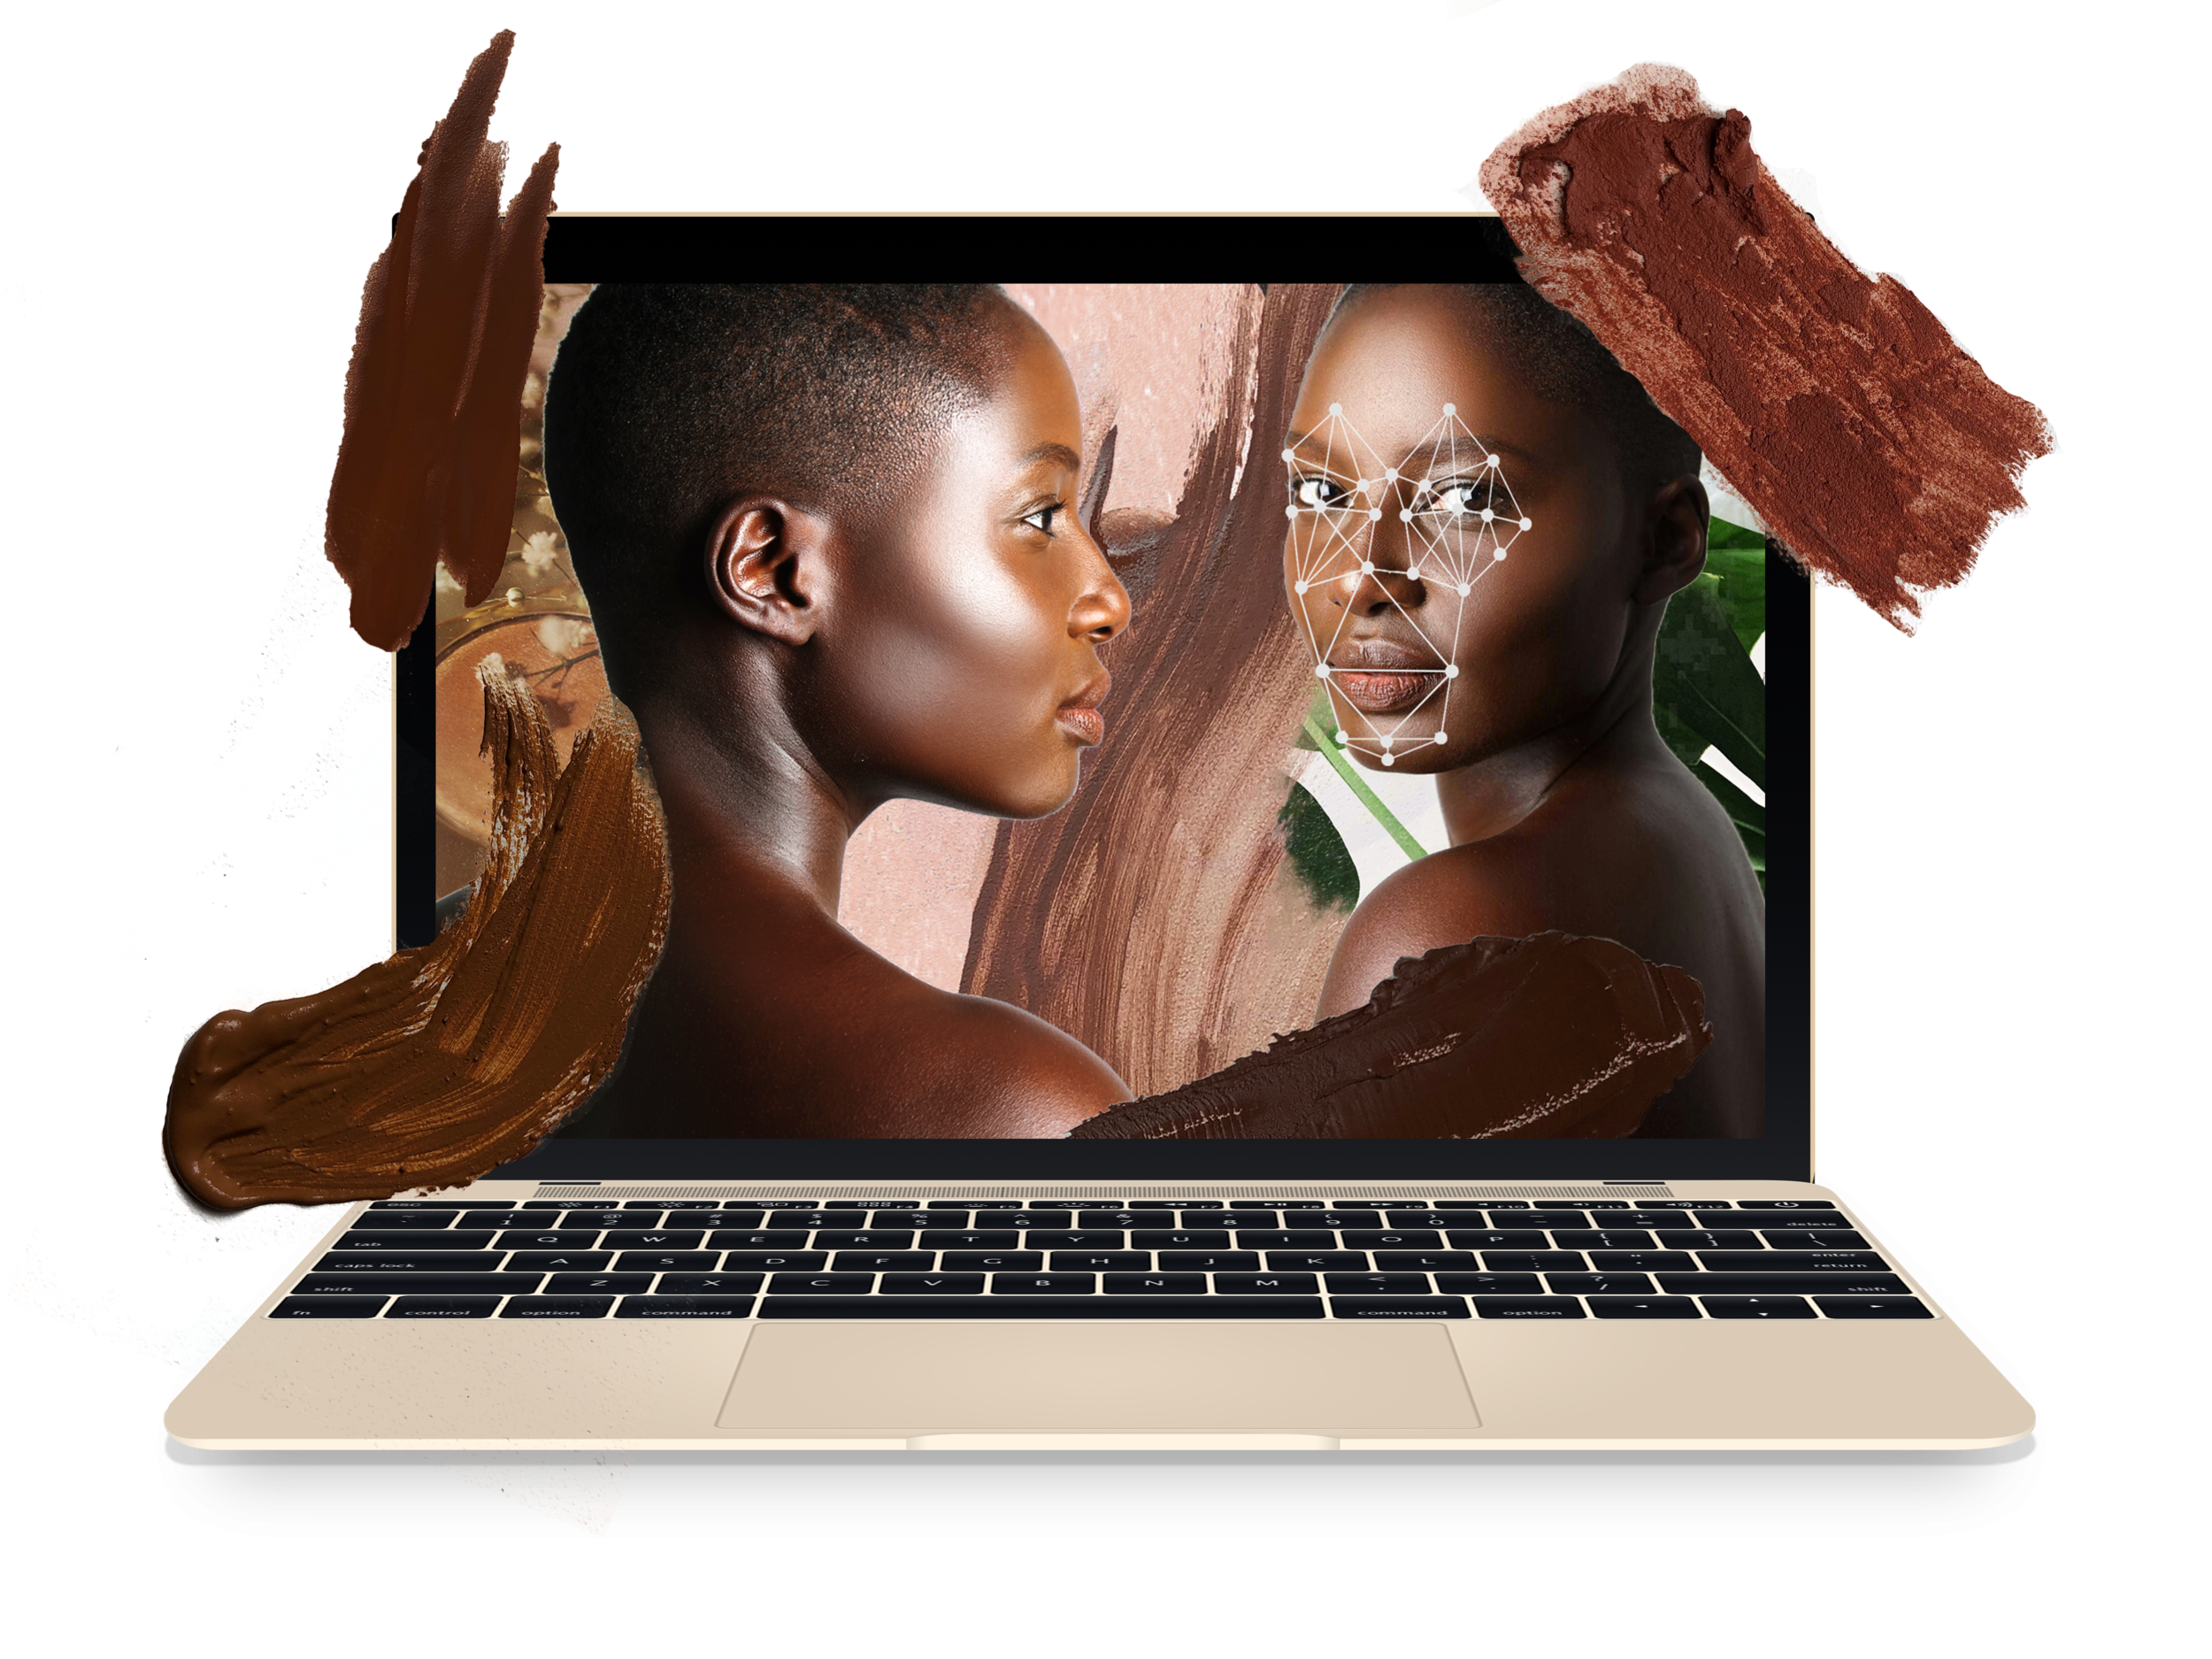 Skin Tone Matching Artificial Intelligence for Your Website - Match the color cosmetics you sell online to your customers' unique skin tones with NUDEMETER™